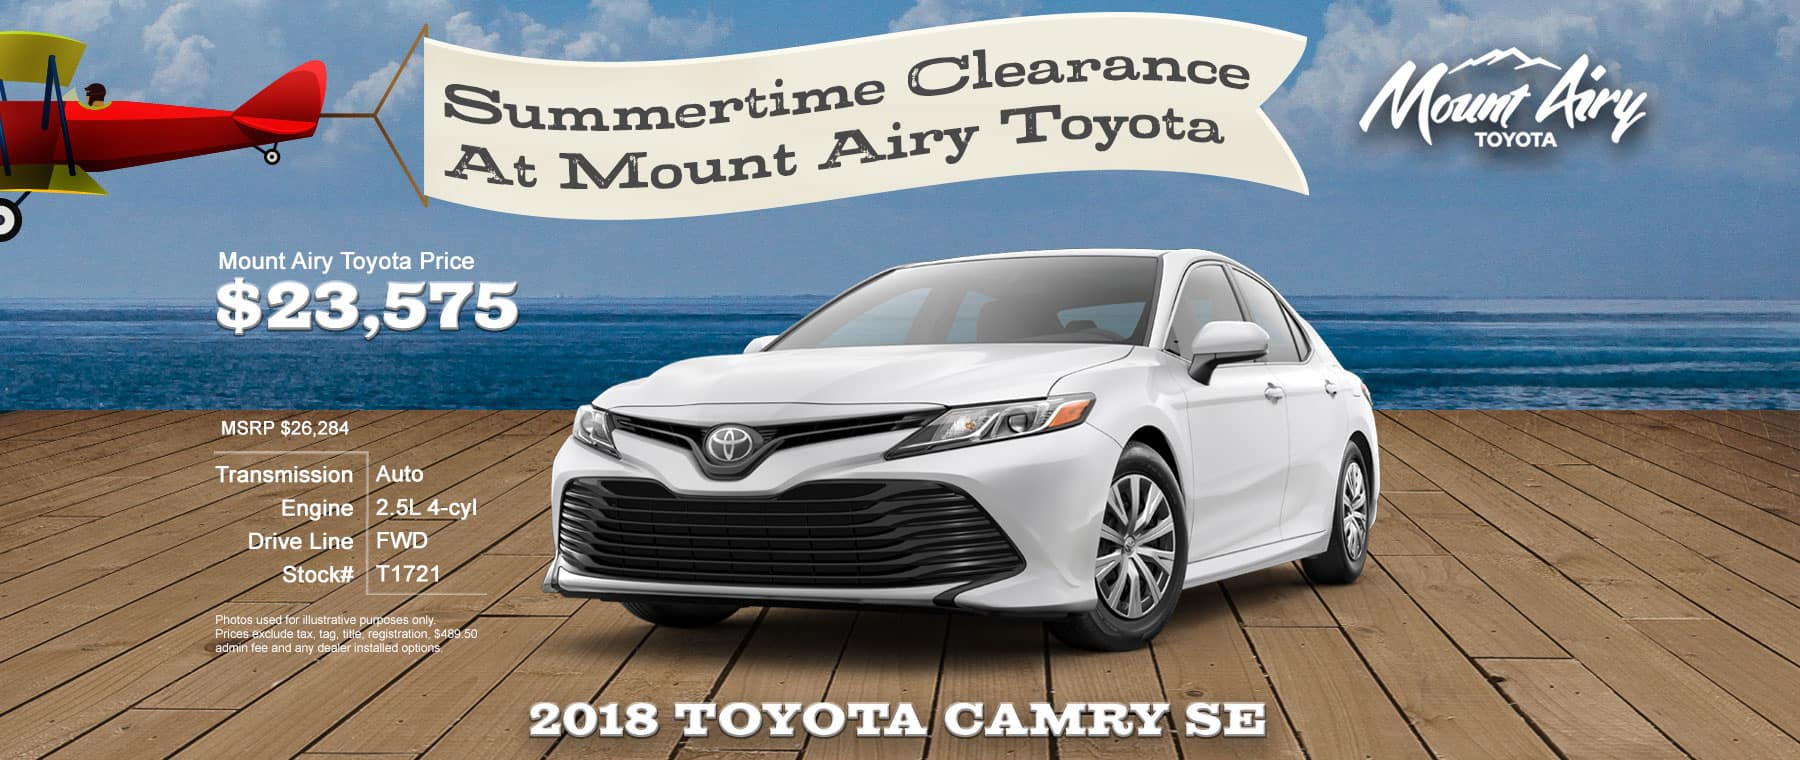 https://di-uploads-pod12.dealerinspire.com/mountairytoyota/uploads/2018/07/Aug_Camry.jpg